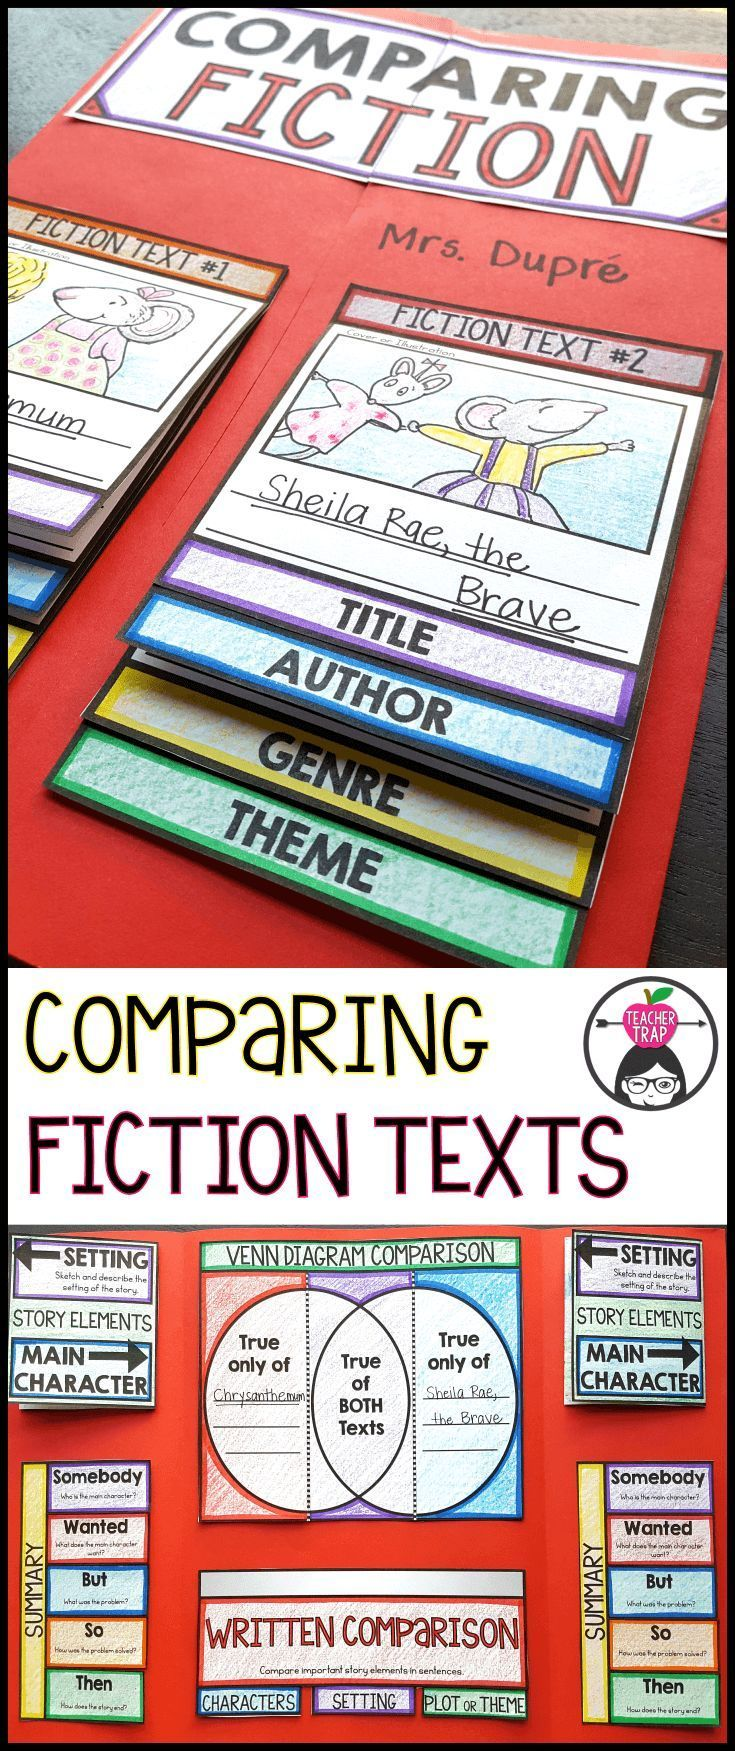 This fun little lapbook helps students think through fiction story elements and compare two fiction texts!